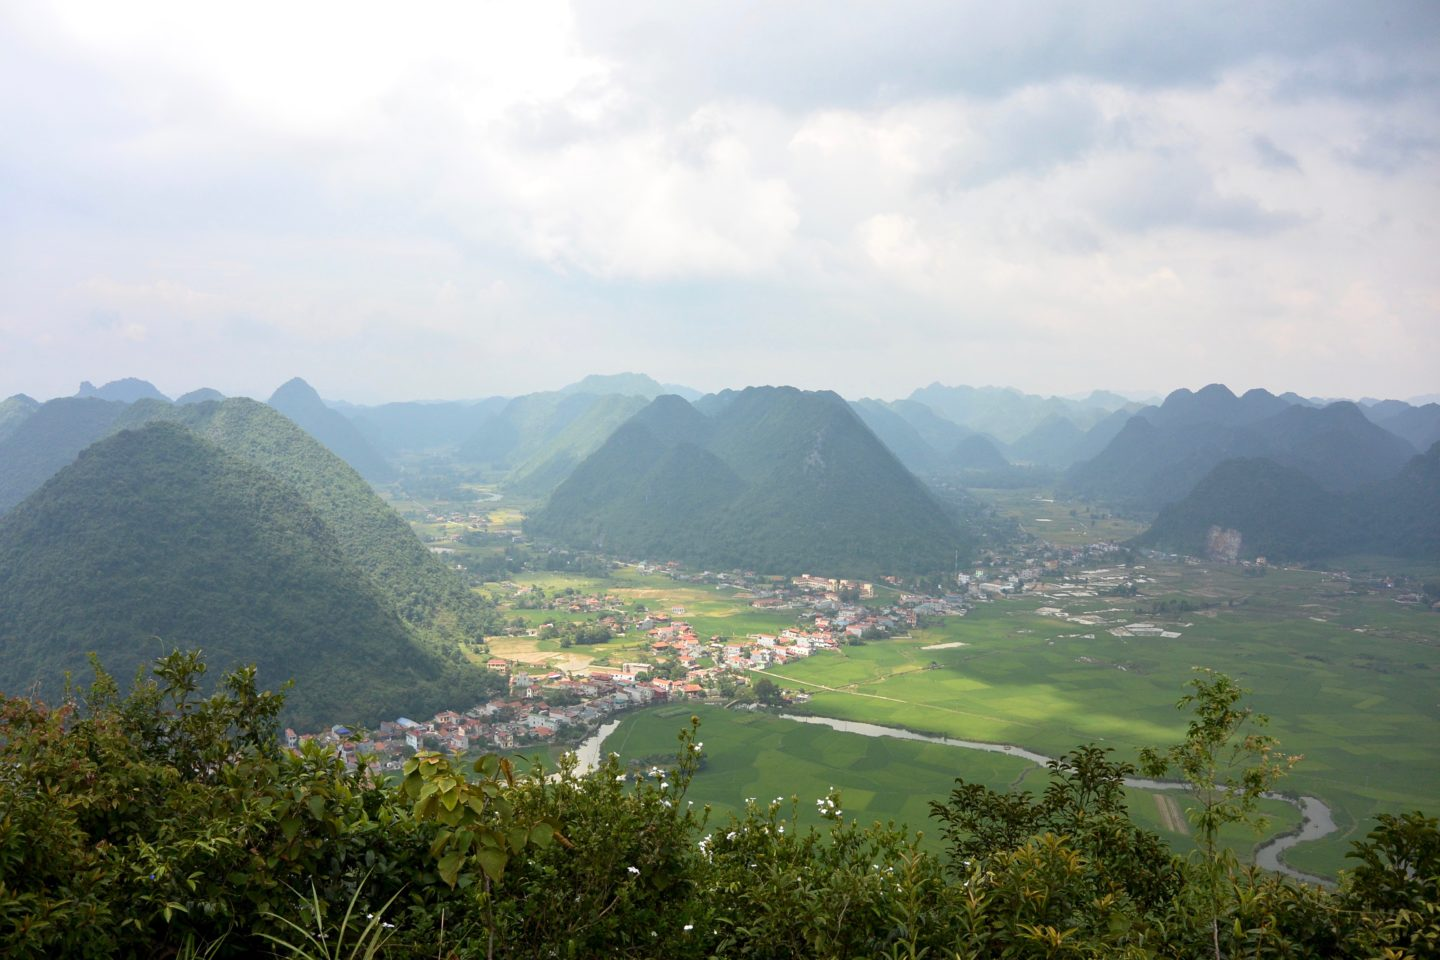 Na Lay Peak aka Bac Son Viewpoint